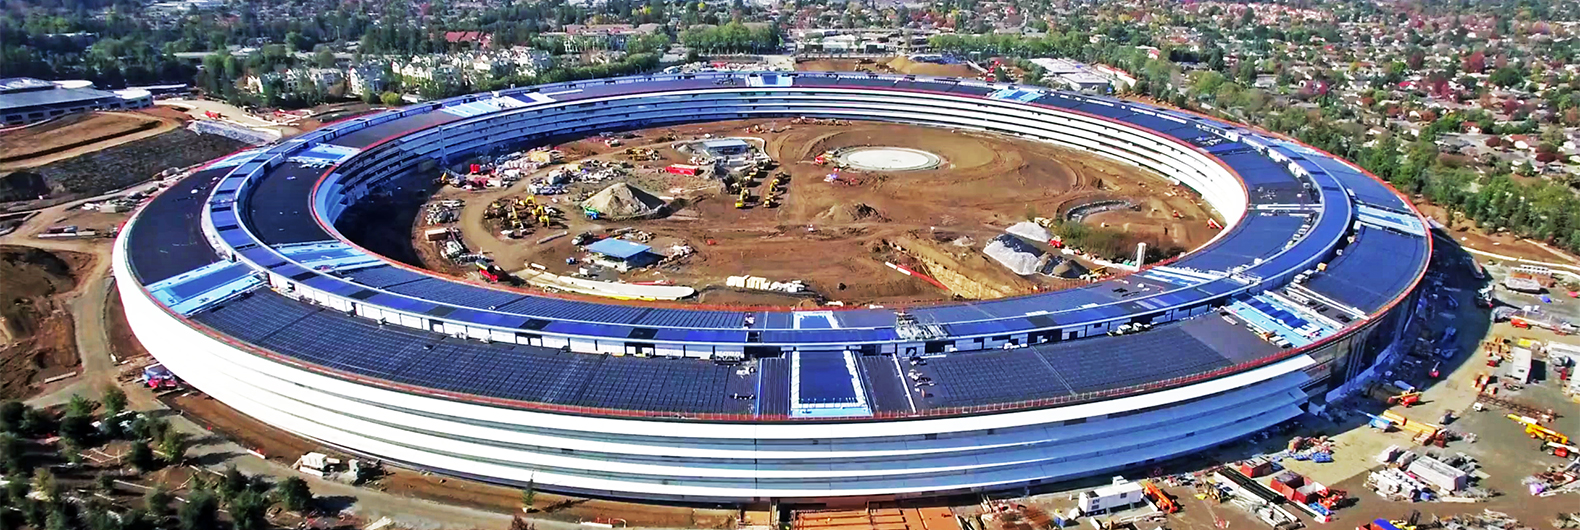 new apple office cupertino. Apple\u0027s New Solar-powered Spaceship Office Is Nearly Complete Apple Cupertino C